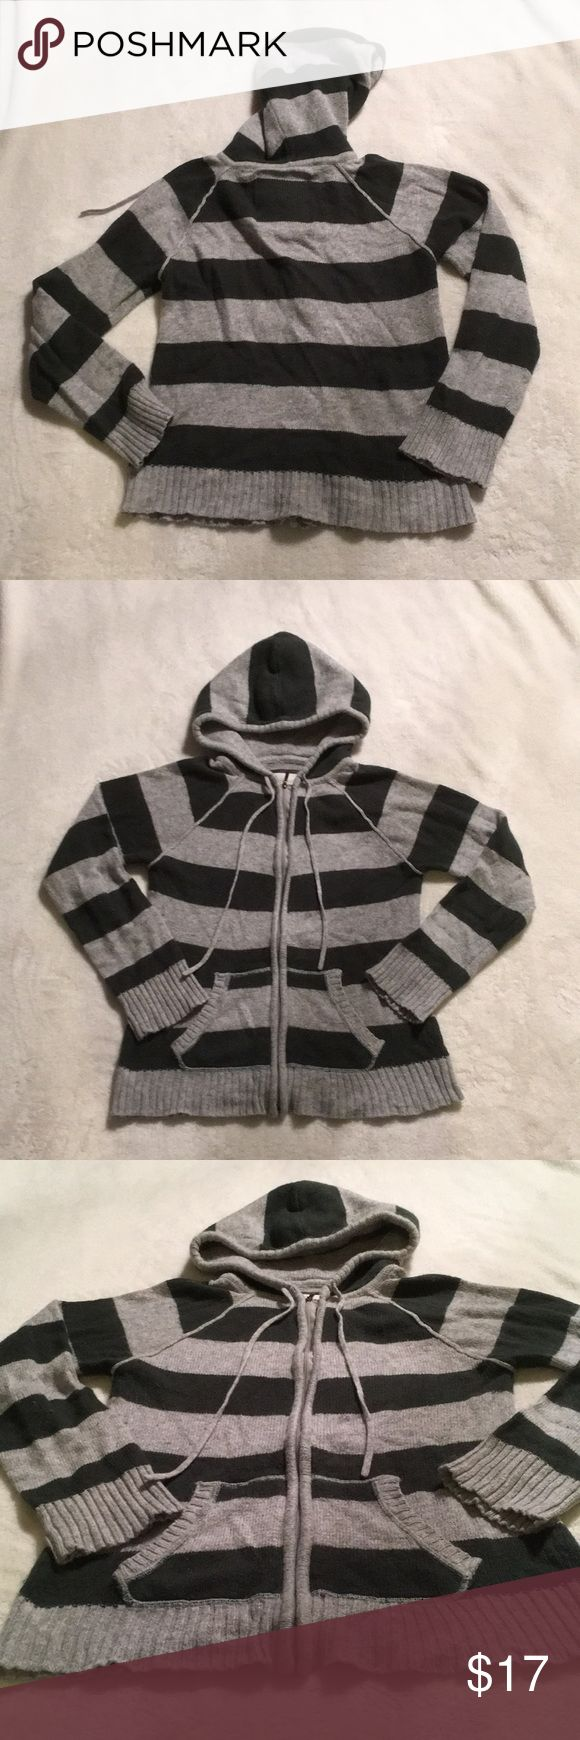 ⚡️New Item! Women's Striped Zip Up Hoodie Sweater Gently worn, women's zip up sweater hoodie. Dark green & grey thick striped. Has hood & 2 draw strings & 2 pockets in the front. Size L but fits more like a M, maybe even a S but does have some stretch to it. Made by Freedom 2 Be. Feels warm & cozy but unfortunately this is a reposh item - it's a lil small for me. Super easy to thrown on when it gets chilly & still look cute. Sweaters